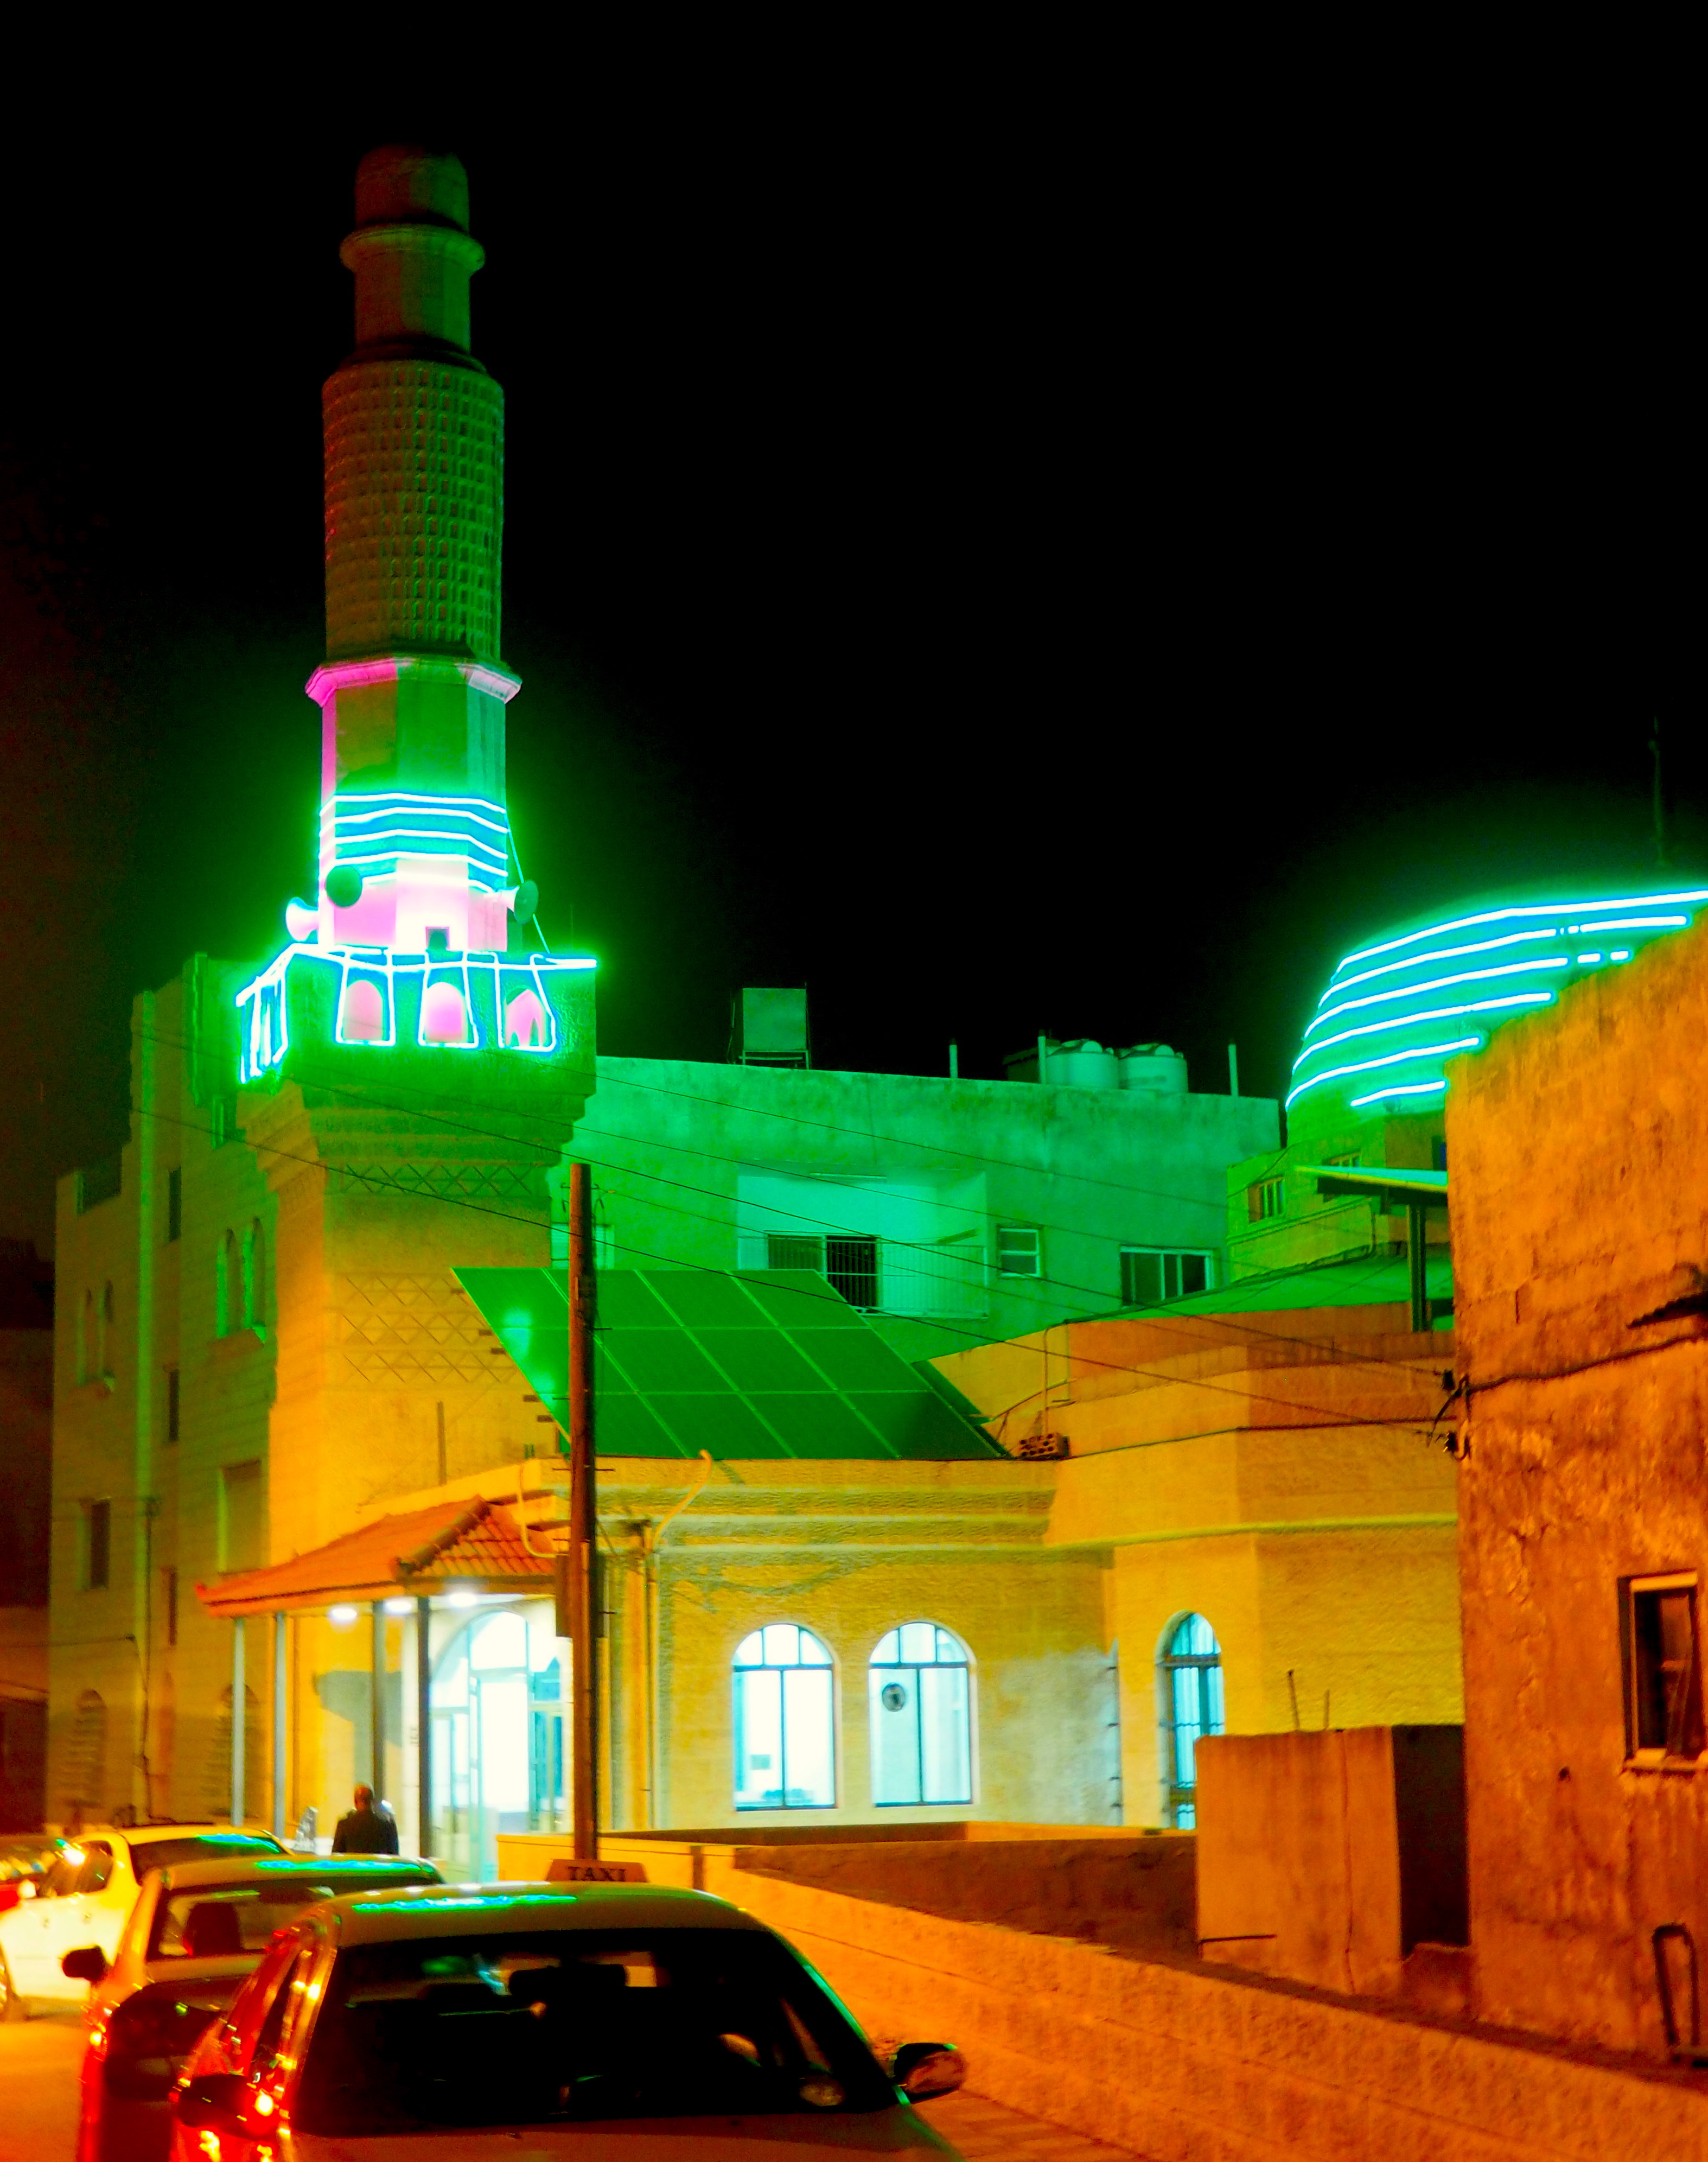 The green glowing lights of a mosque in Amman, Jordan